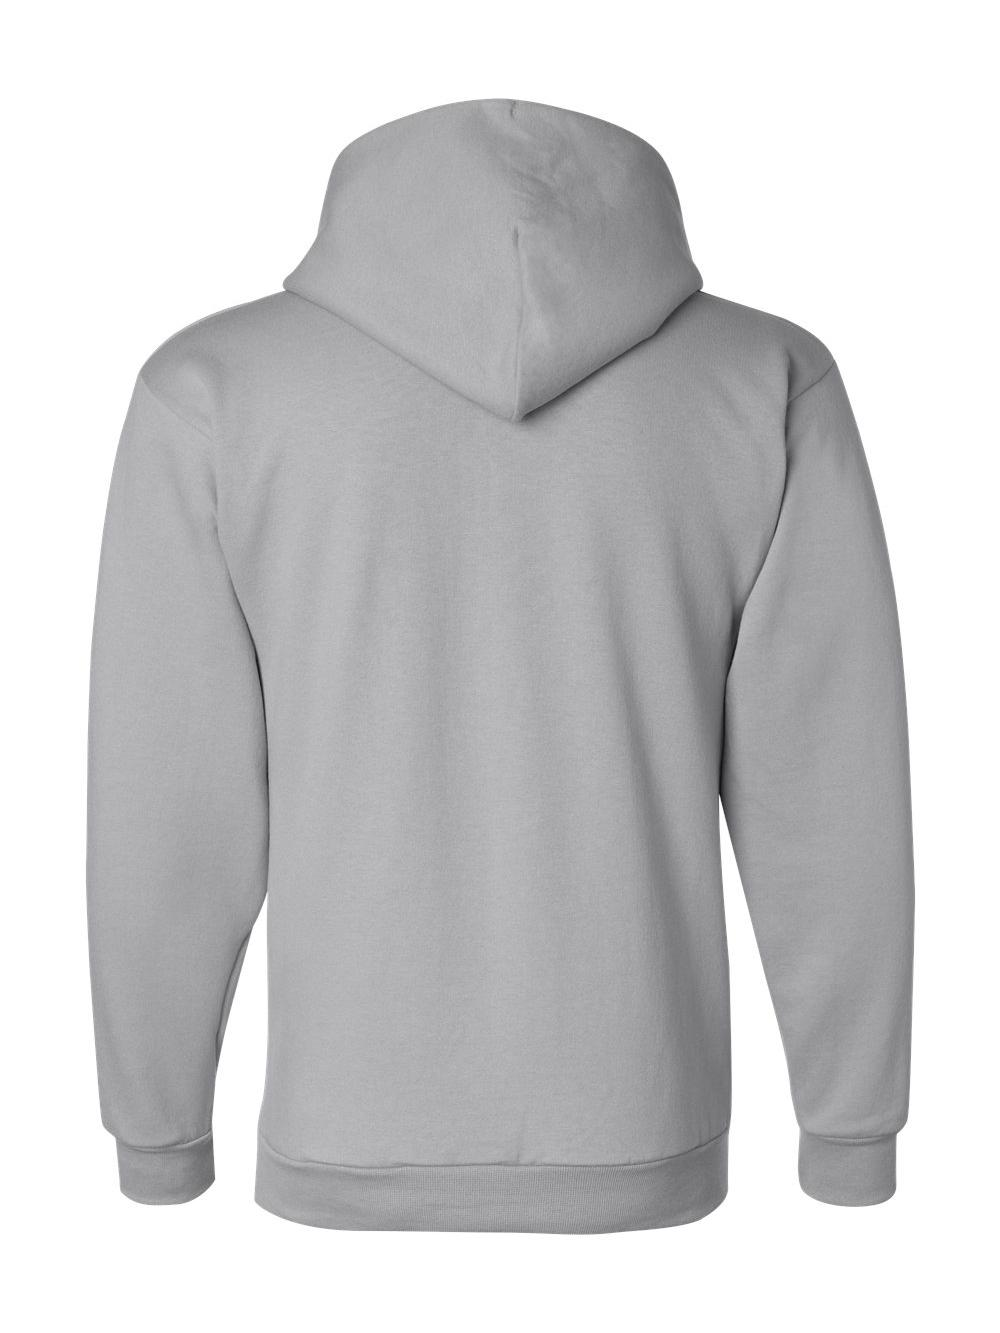 Double Dry Eco Hooded Sweatshirt Champion S700